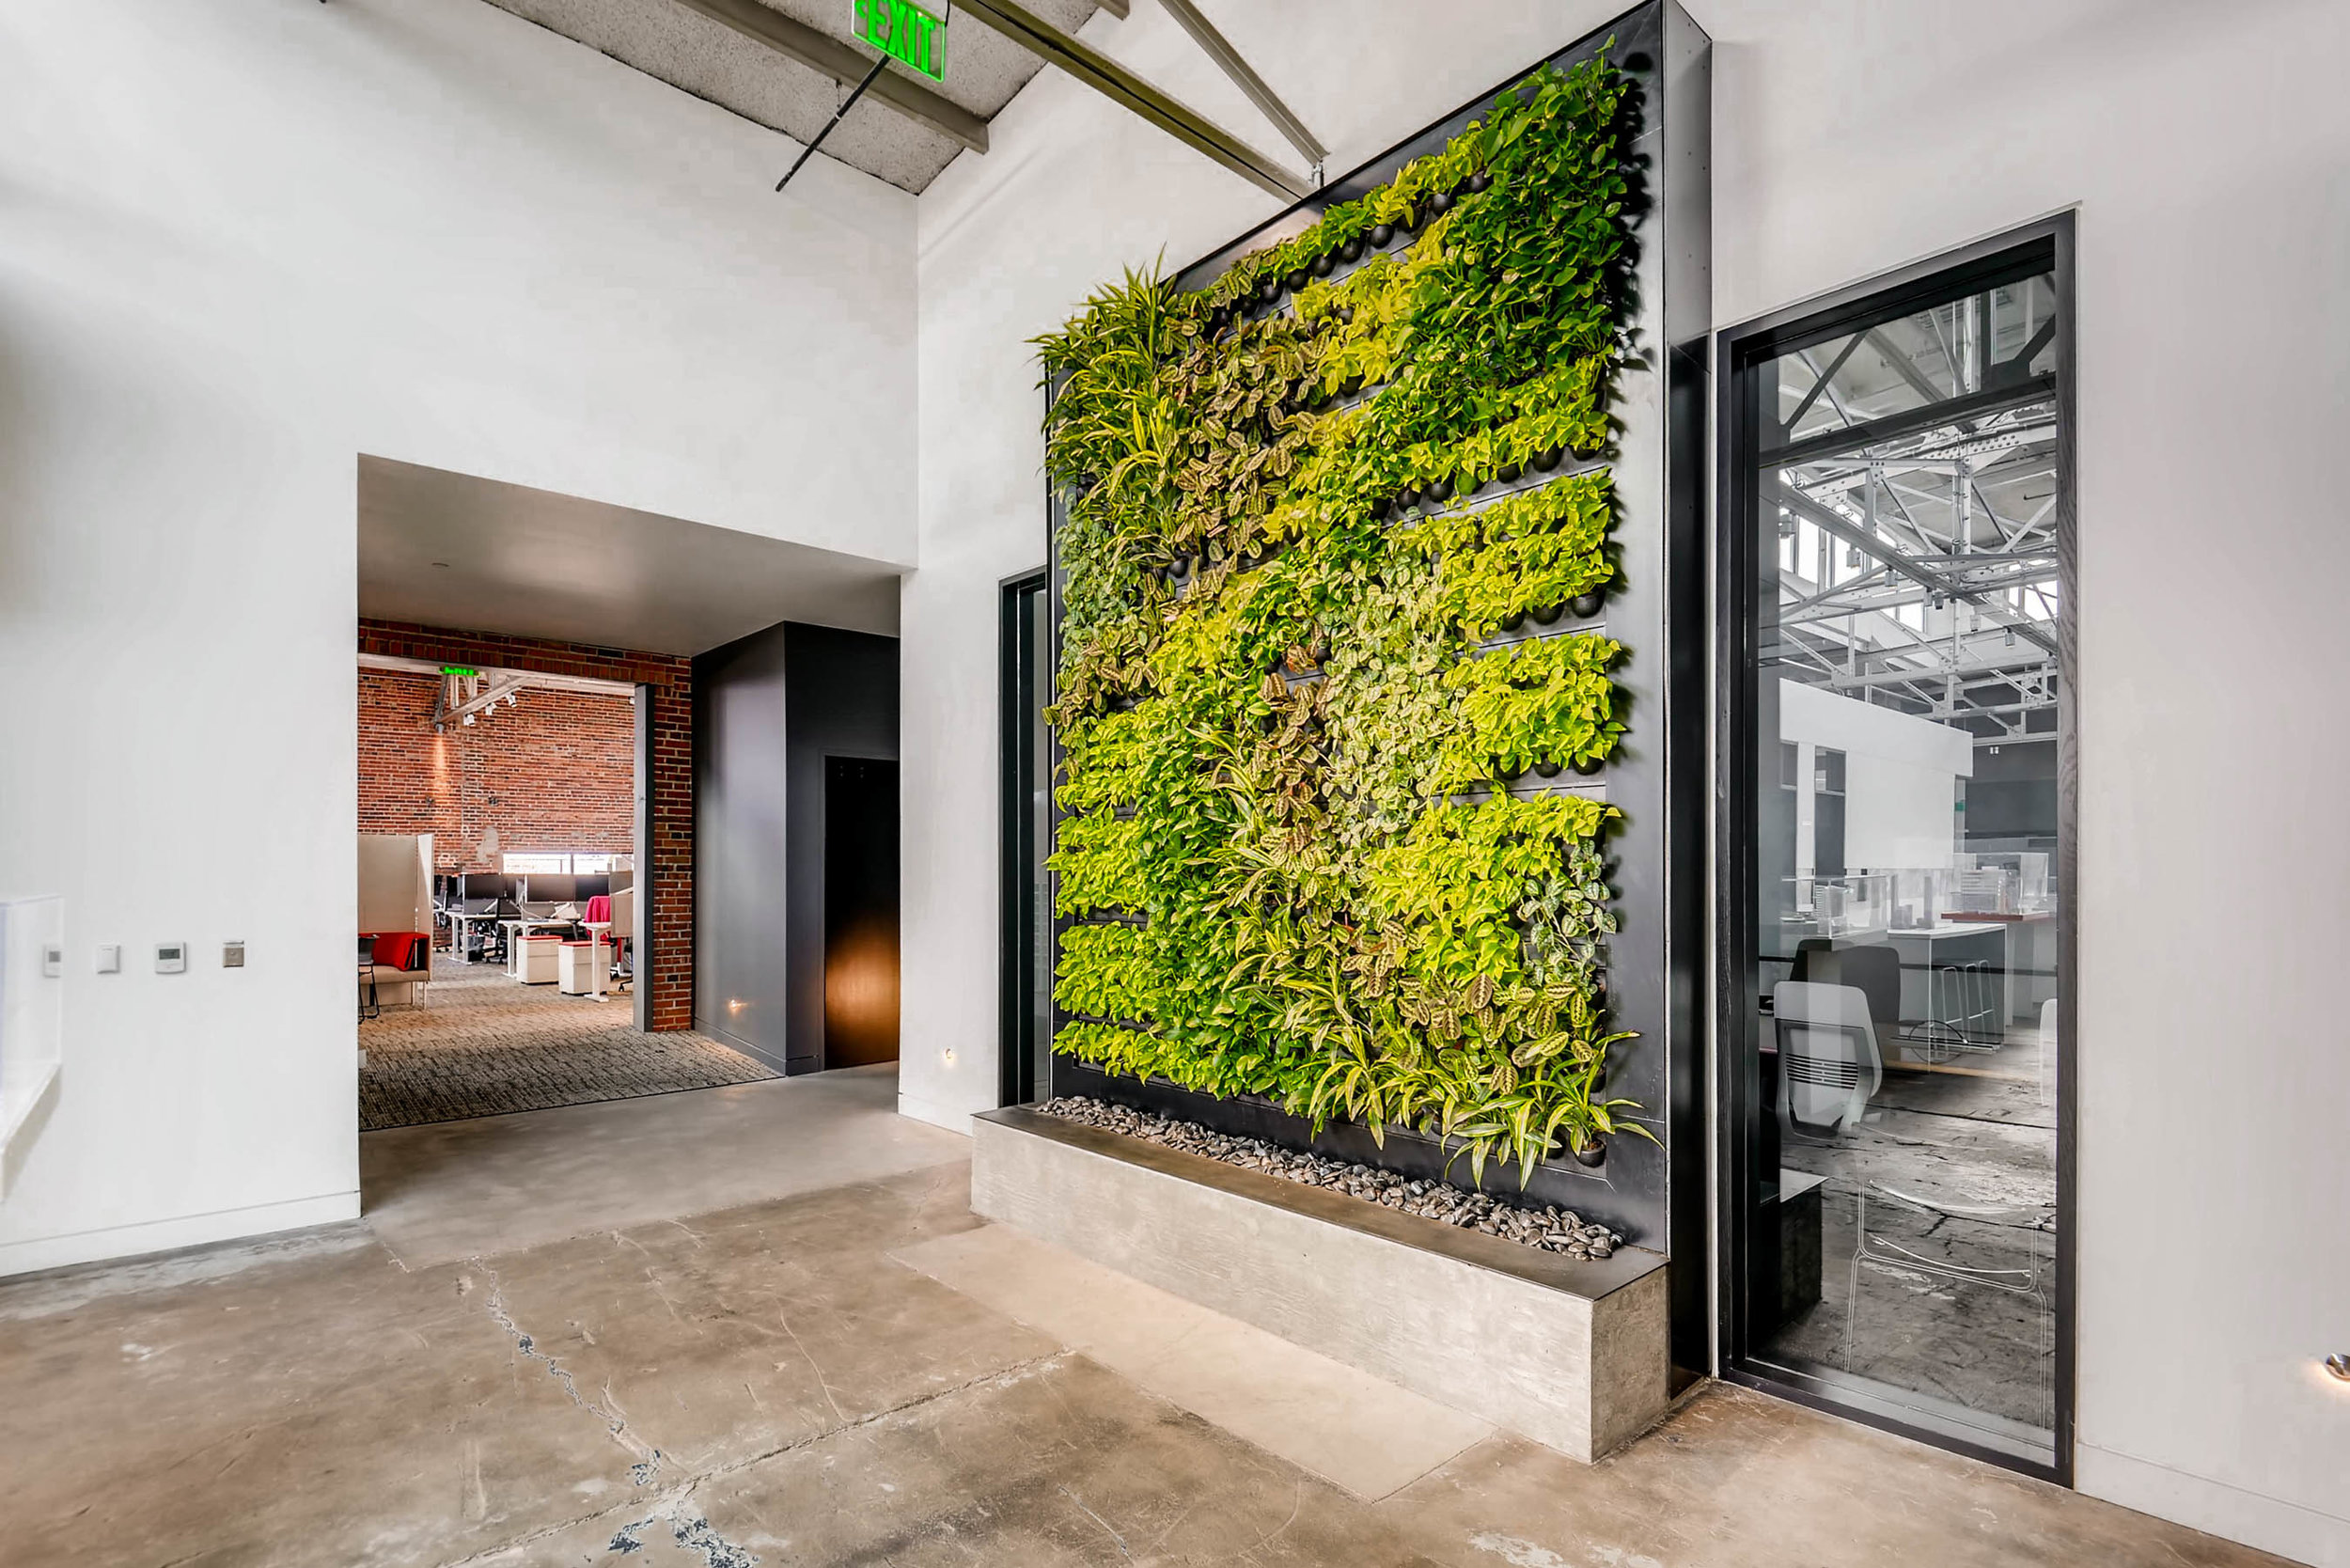 Living Wall Art in Architecture Firm - Denver, Colorado